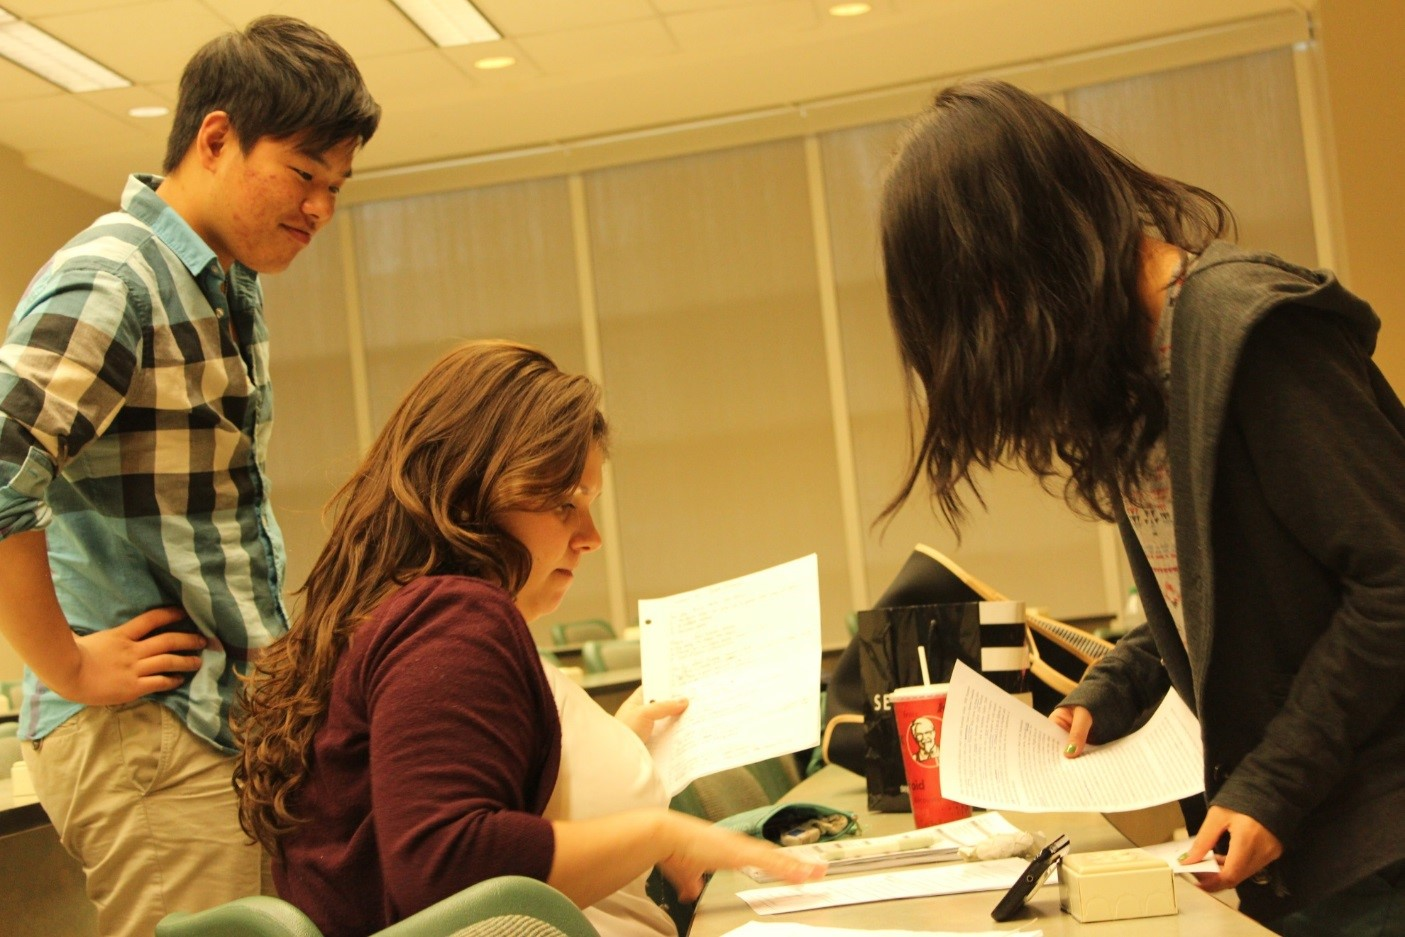 English as a second language students get help from caring teachers at CultureWorks